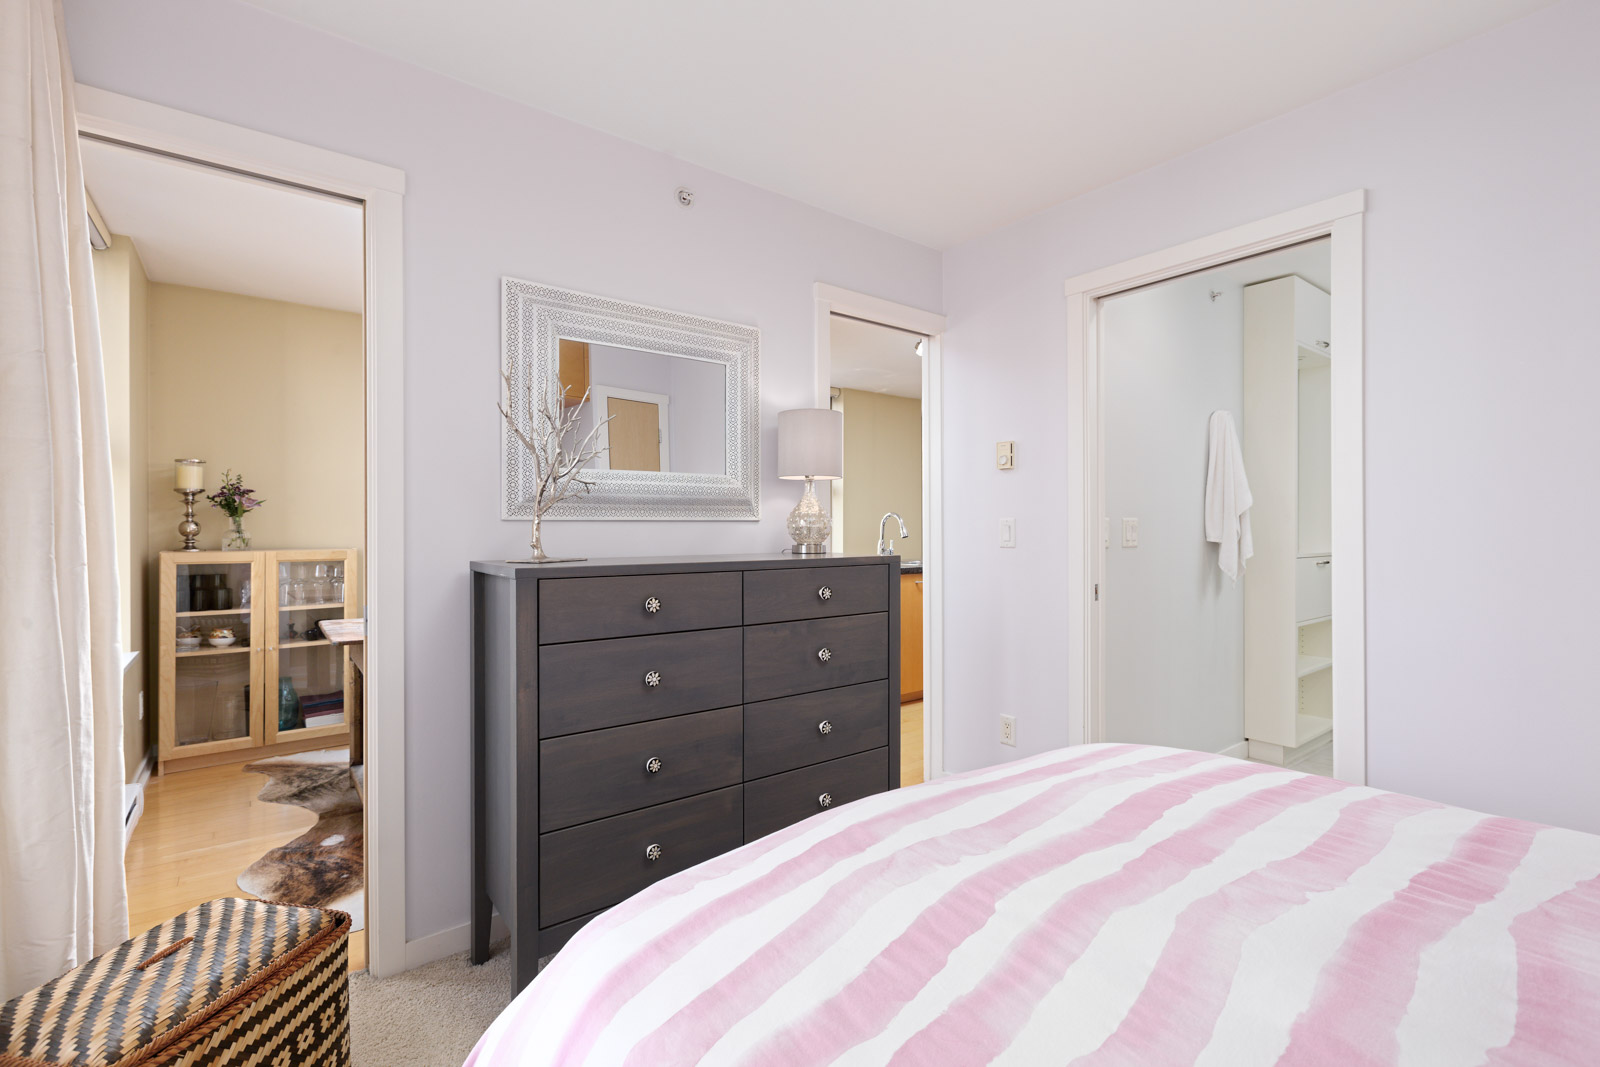 furnished bedroom in Yaletown condo with pink bedding